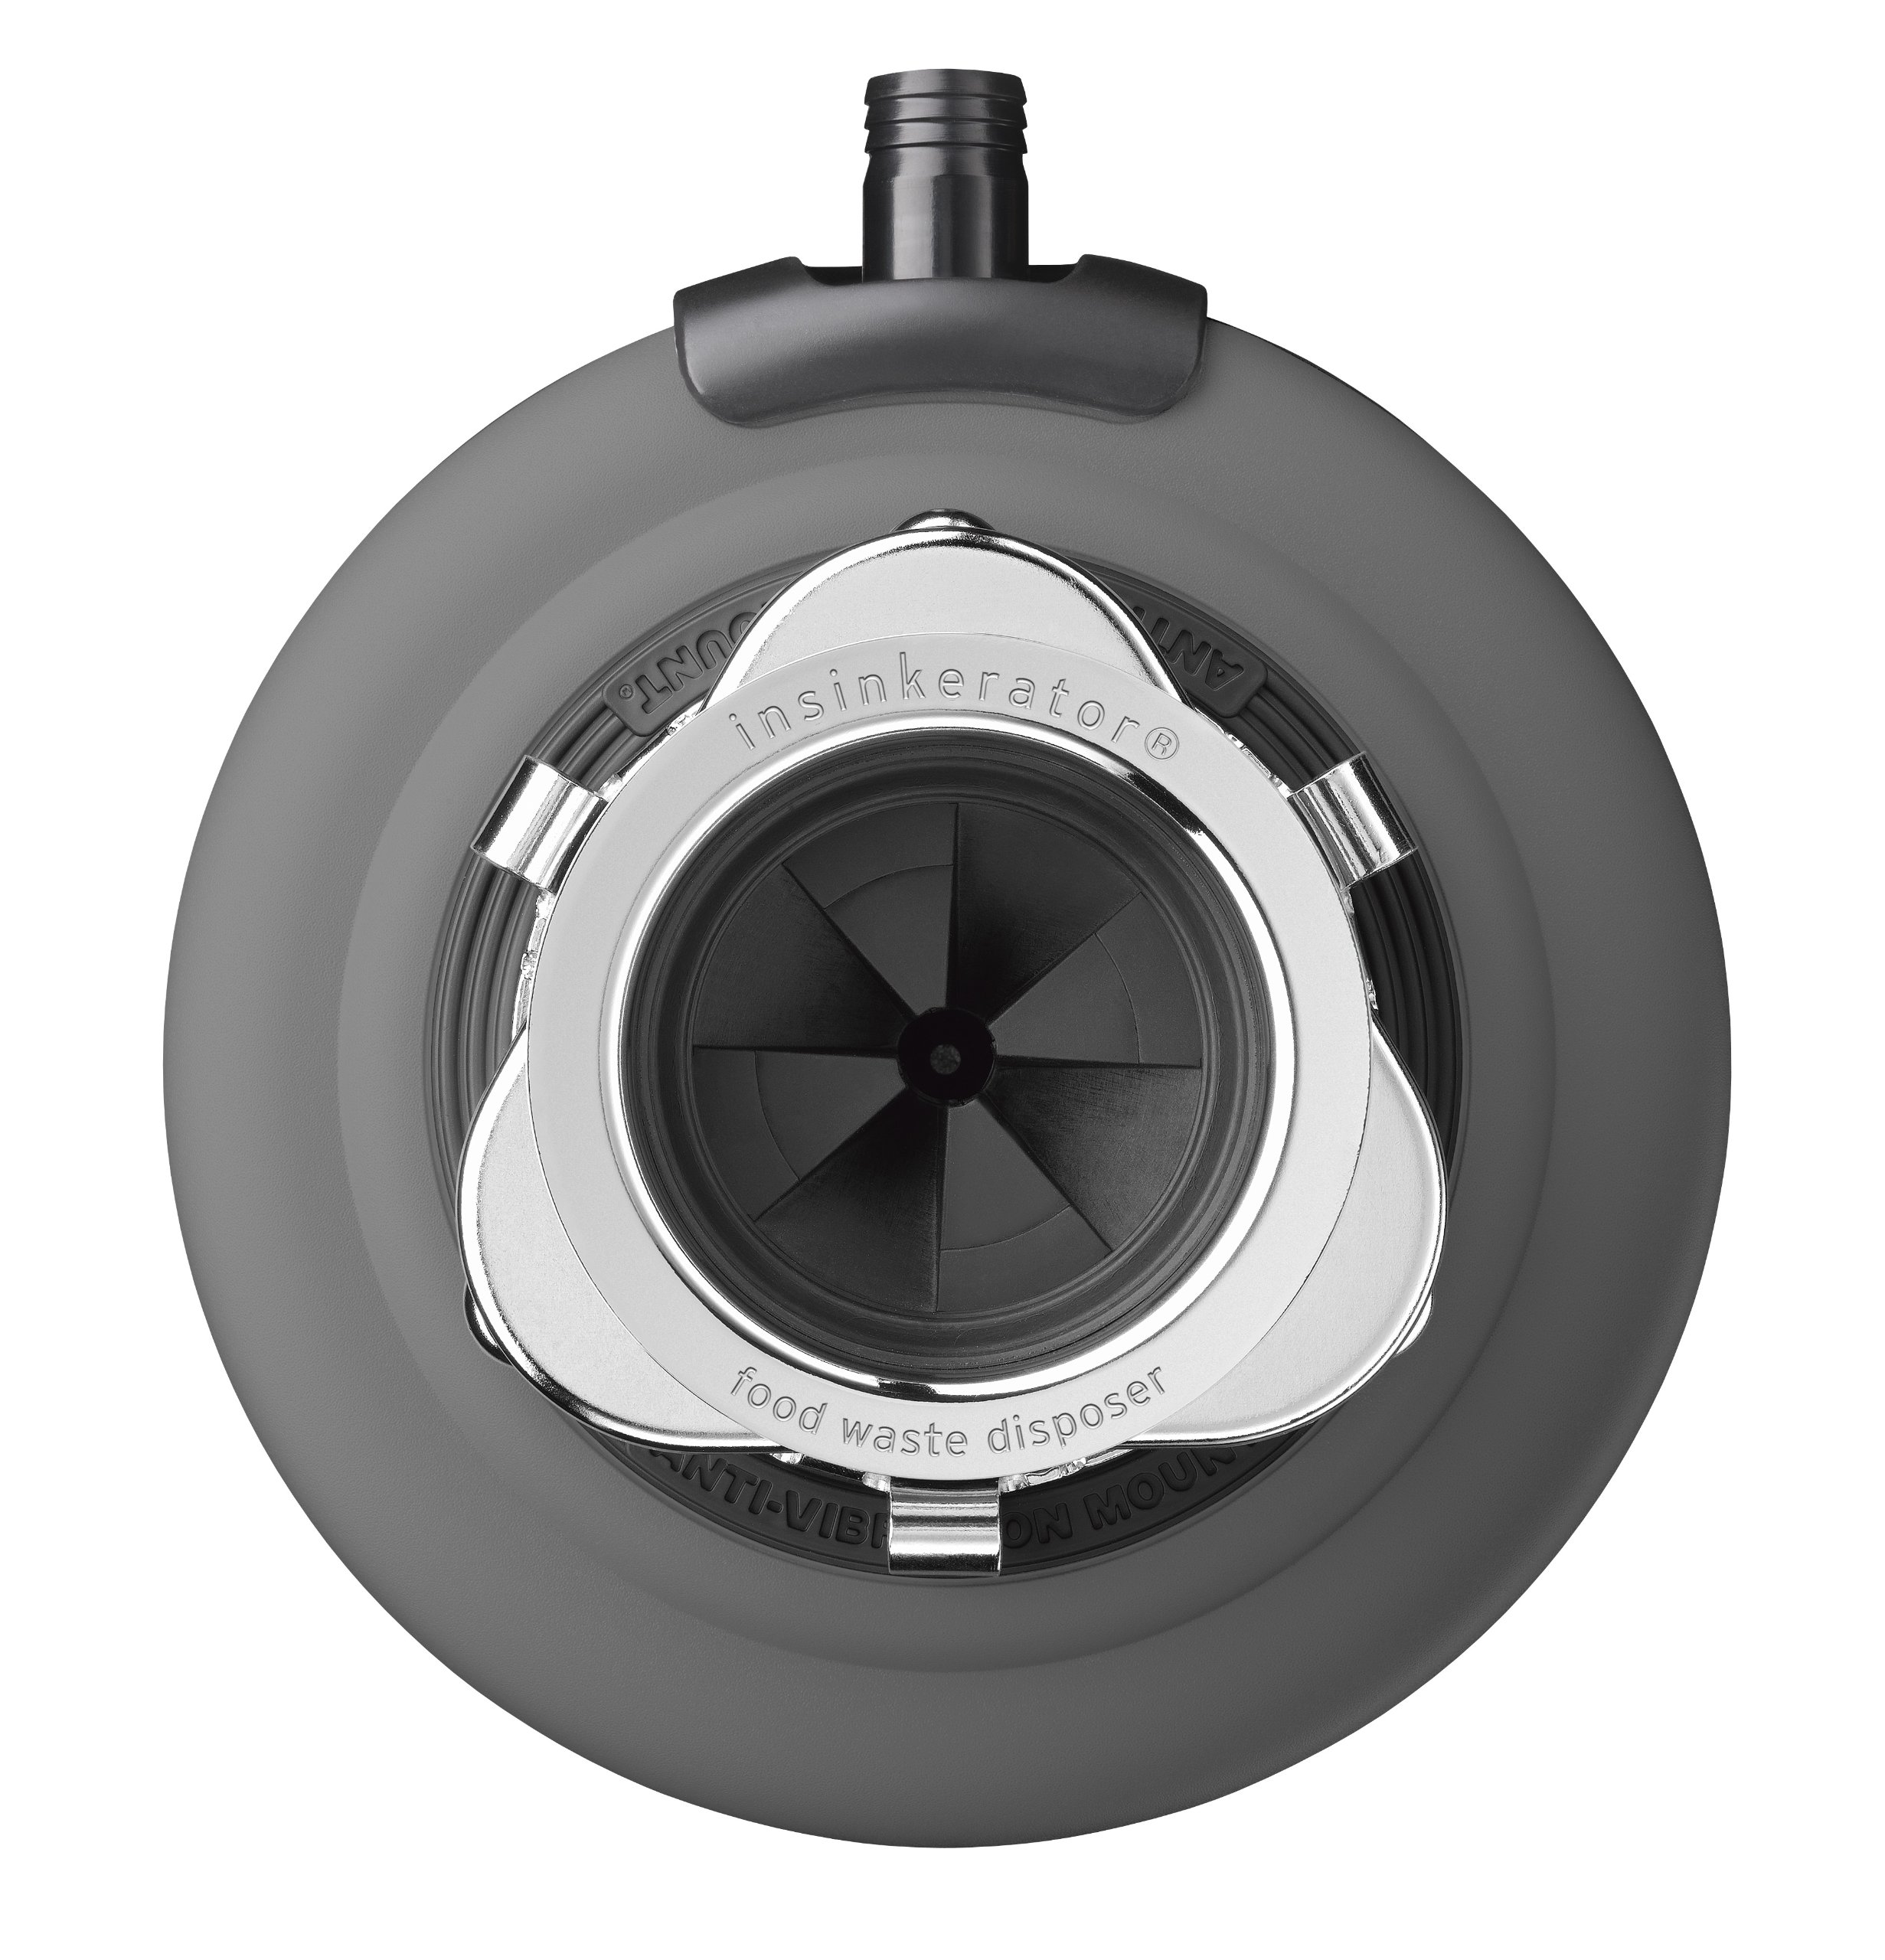 InSinkErator Garbage Disposal, Evolution Excel, 1.0 HP Continuous Feed by InSinkErator